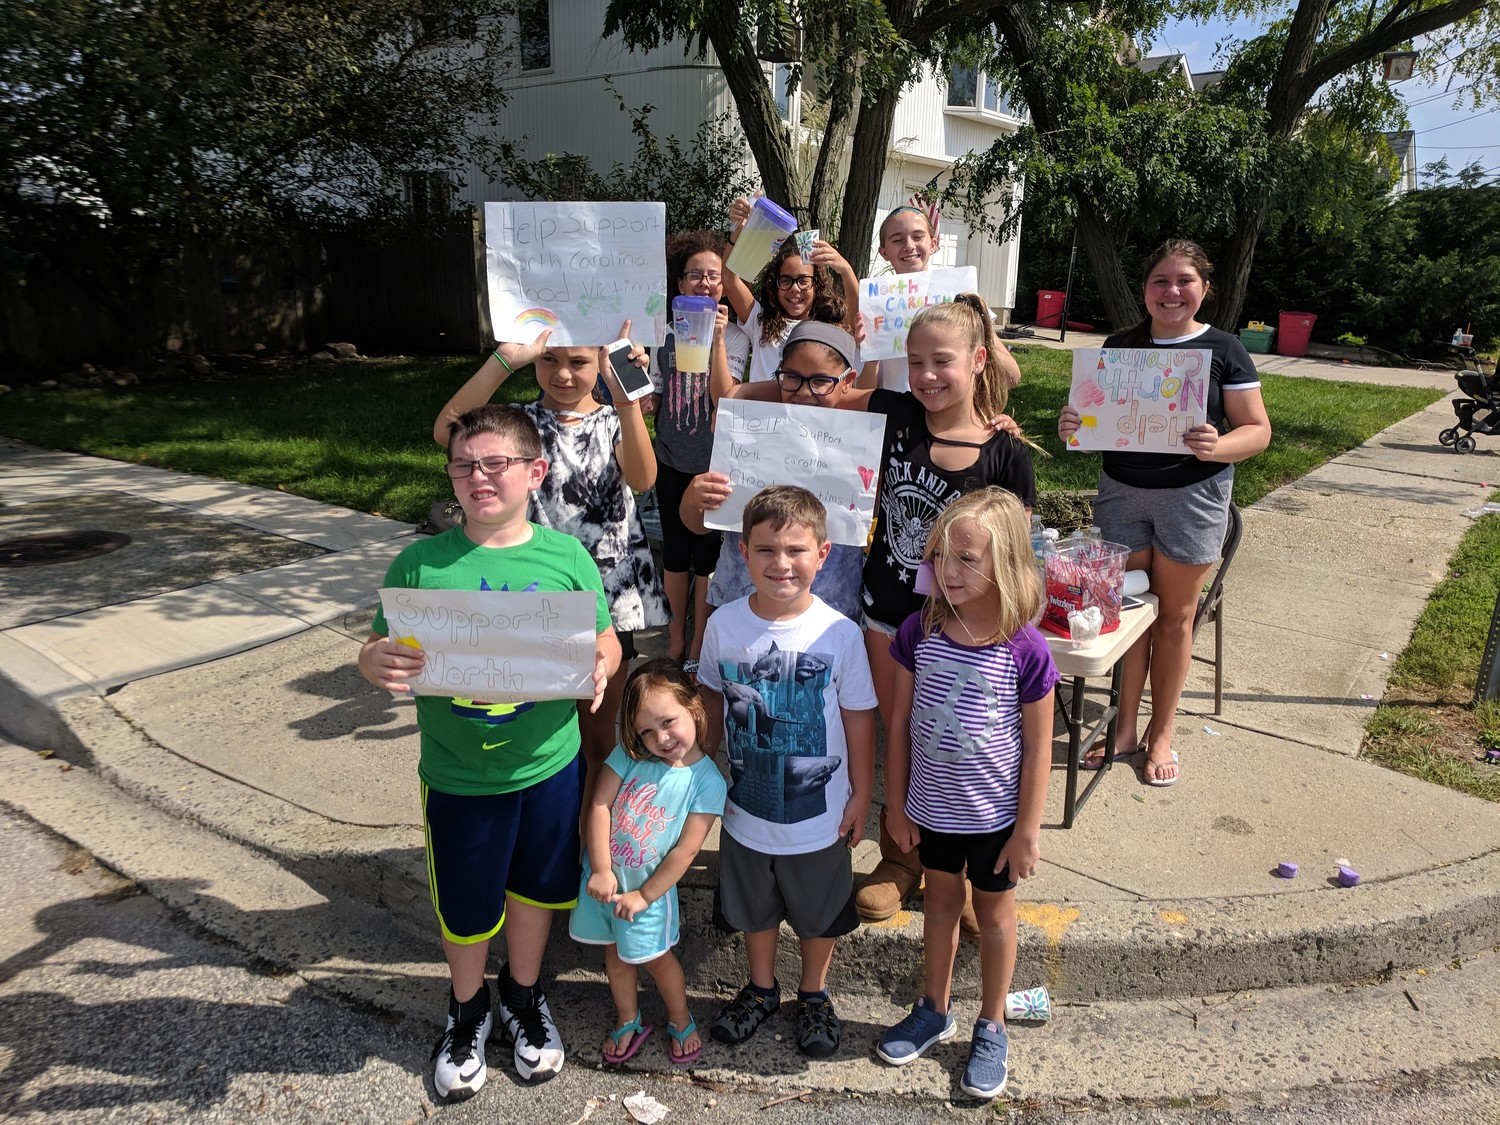 A dozen children, with the help of adults, set up a lemonade stand in Island Park to raise money for flood victims in North Carolina in the aftermath of Hurricane Florence.